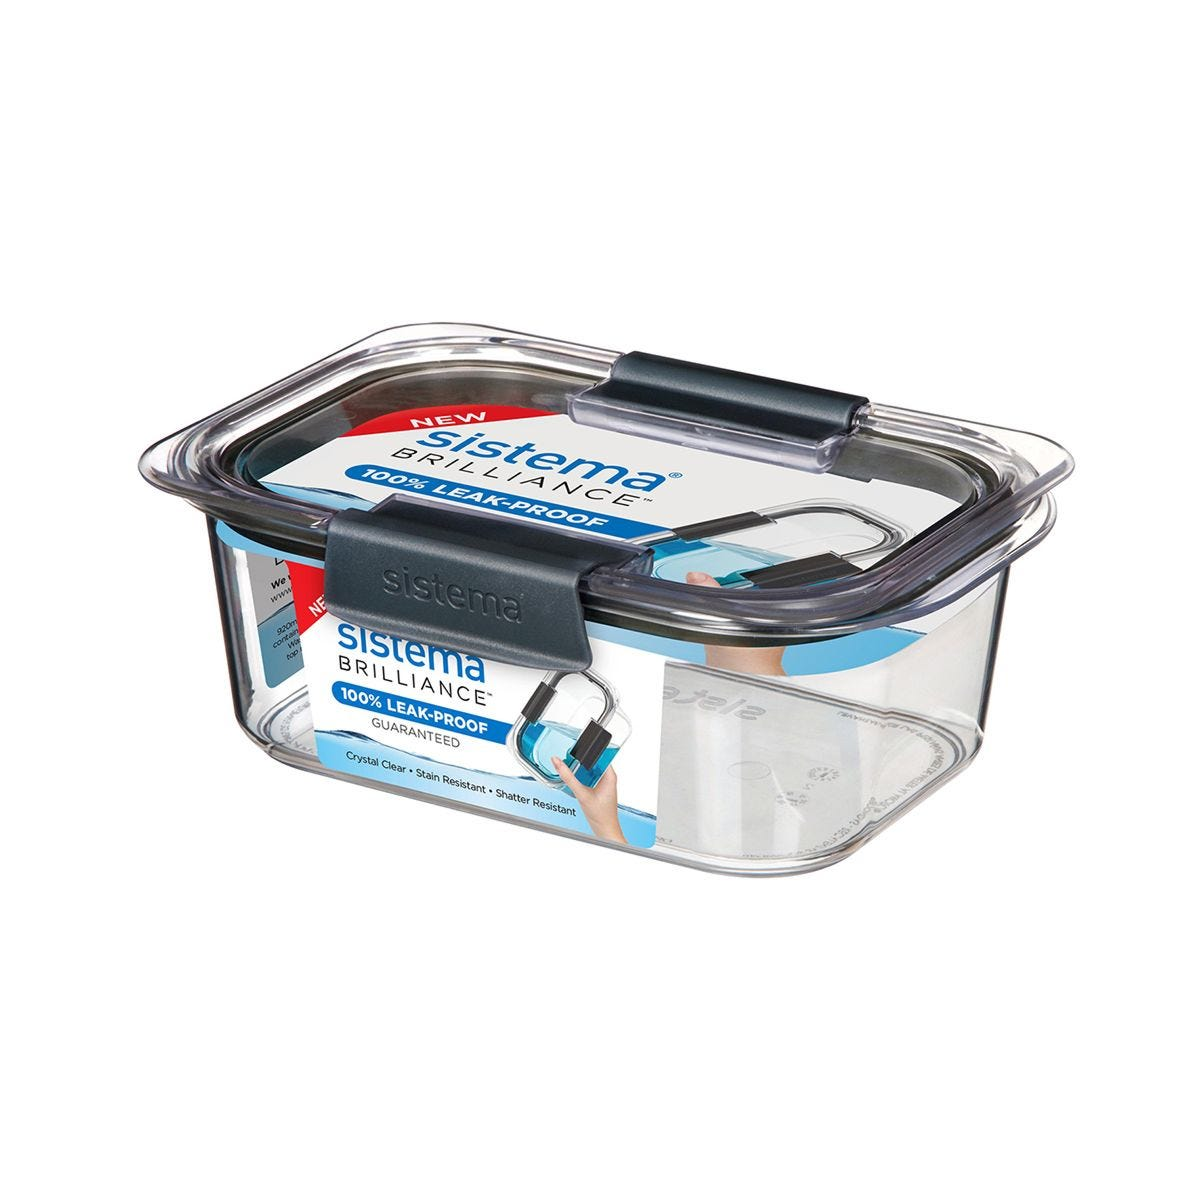 Sistema Brilliance Medium Rectangular Container - 920ml